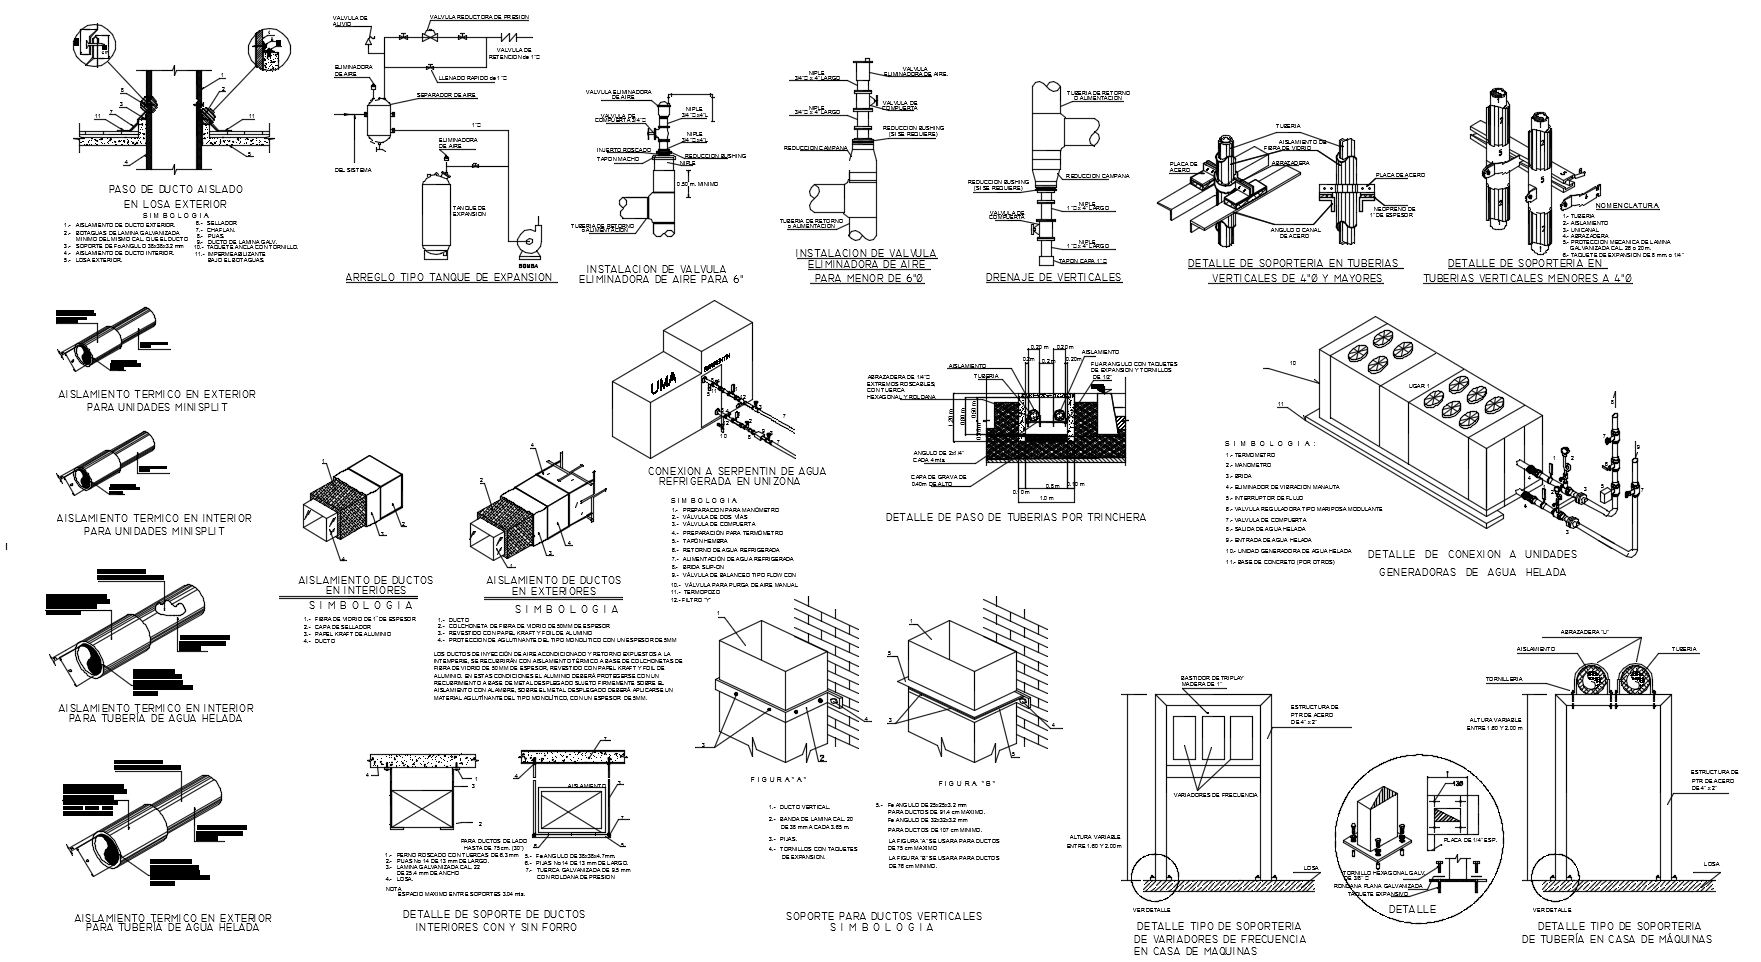 Cad Details Cad Details Of Air Conditioning Equipment For